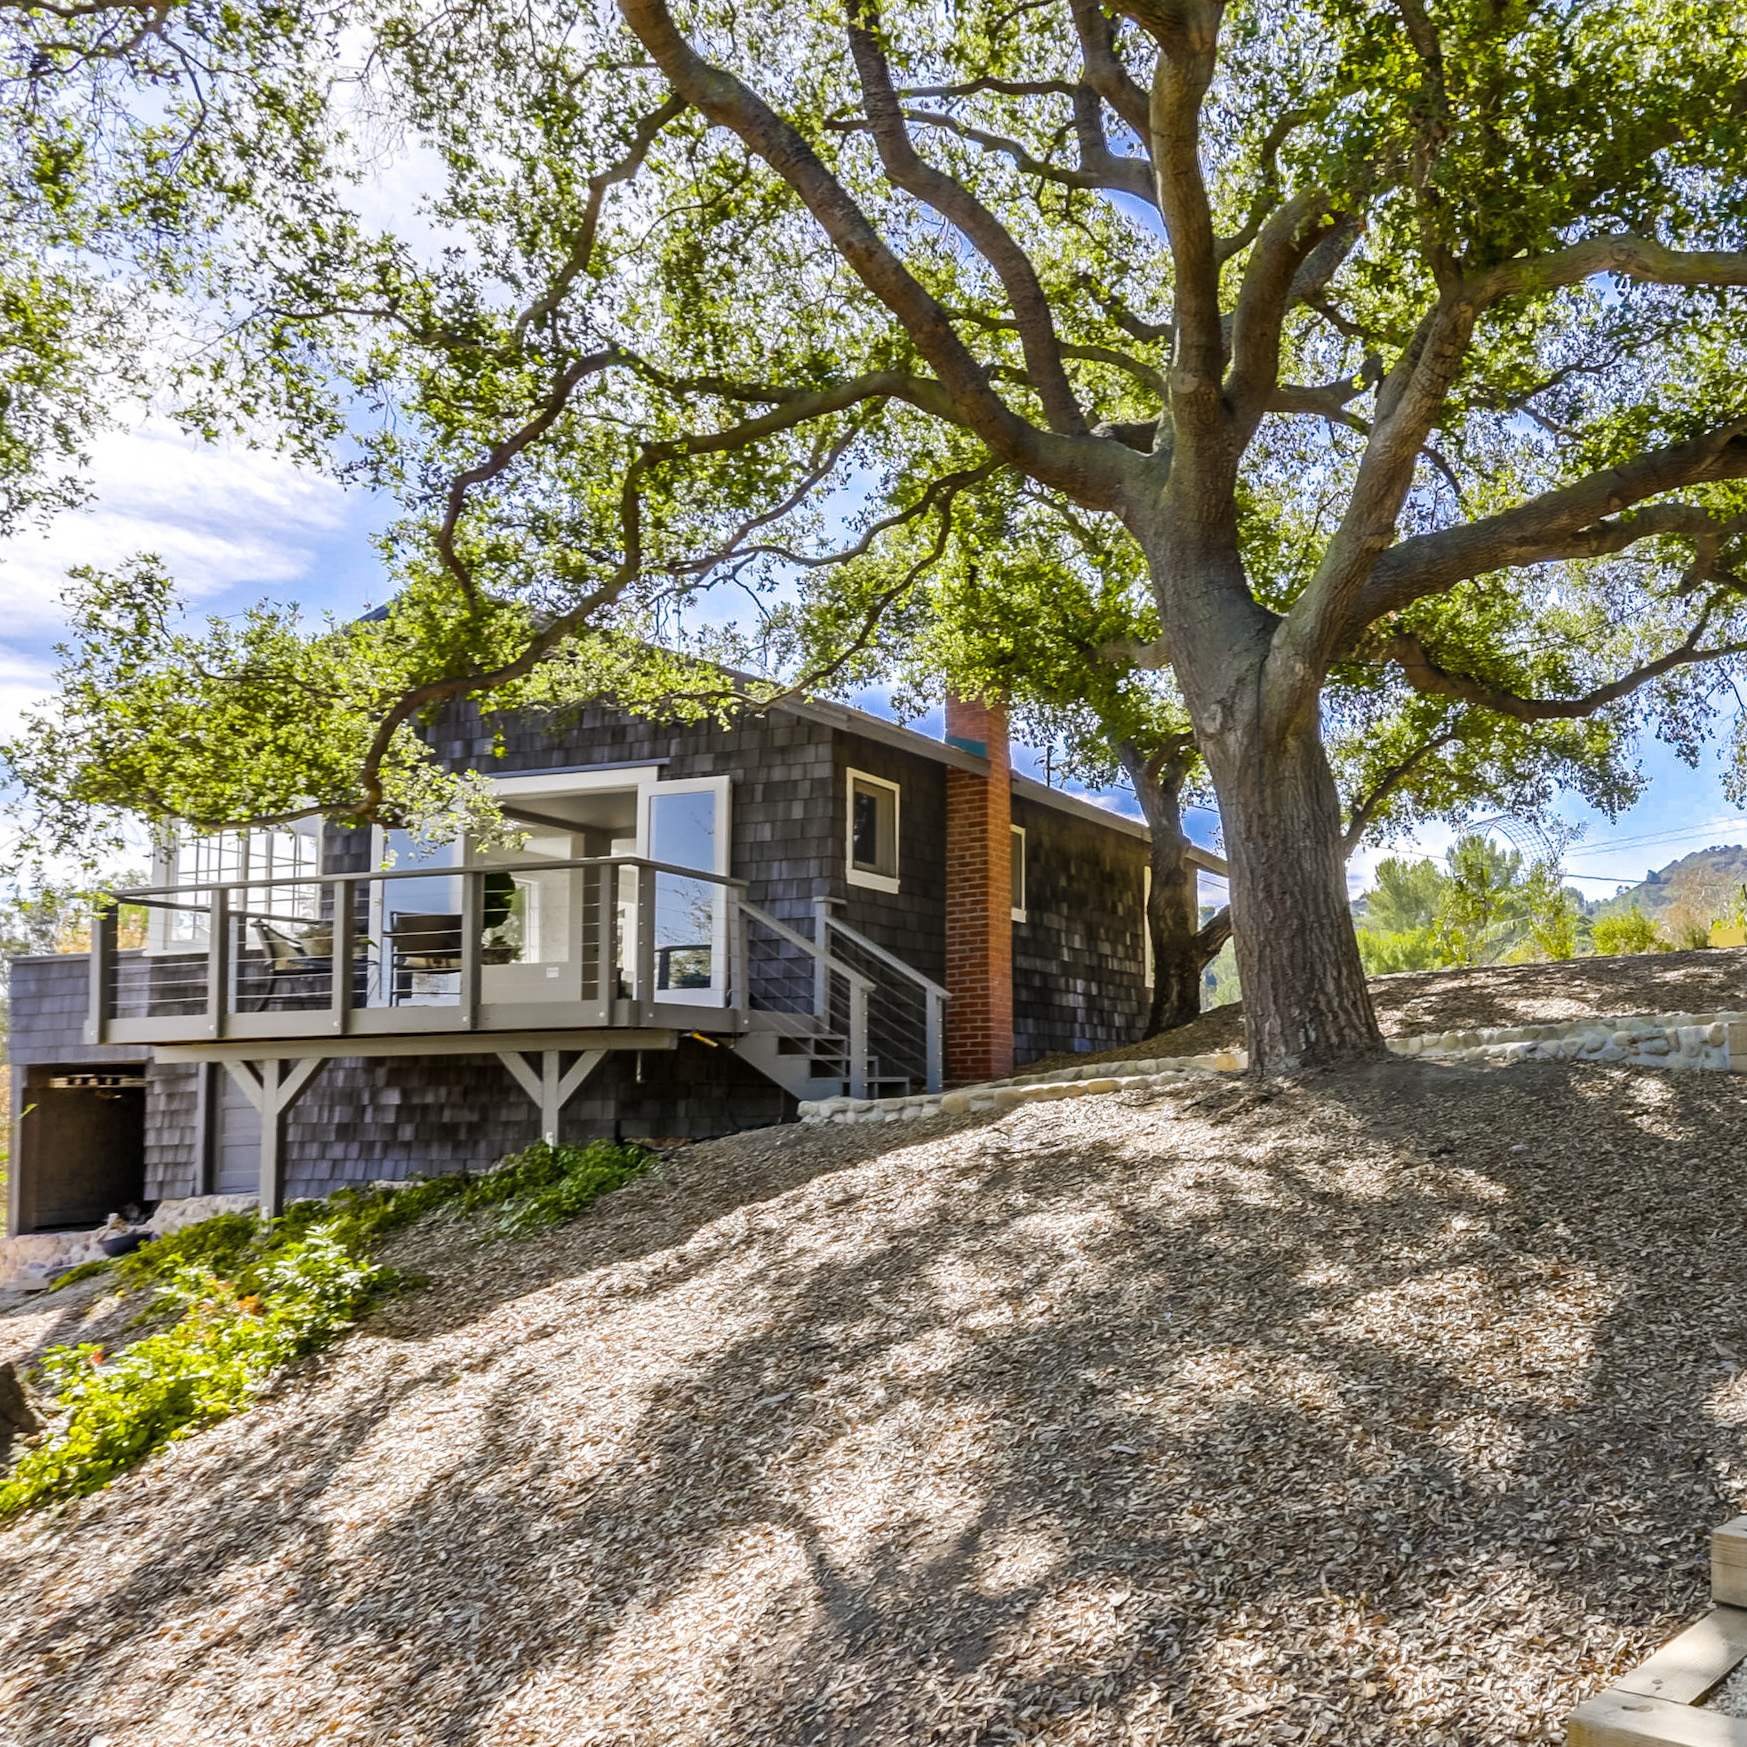 1543 Fernwood Pacific Dr - Topanga$1,074,000Represented Both Sides